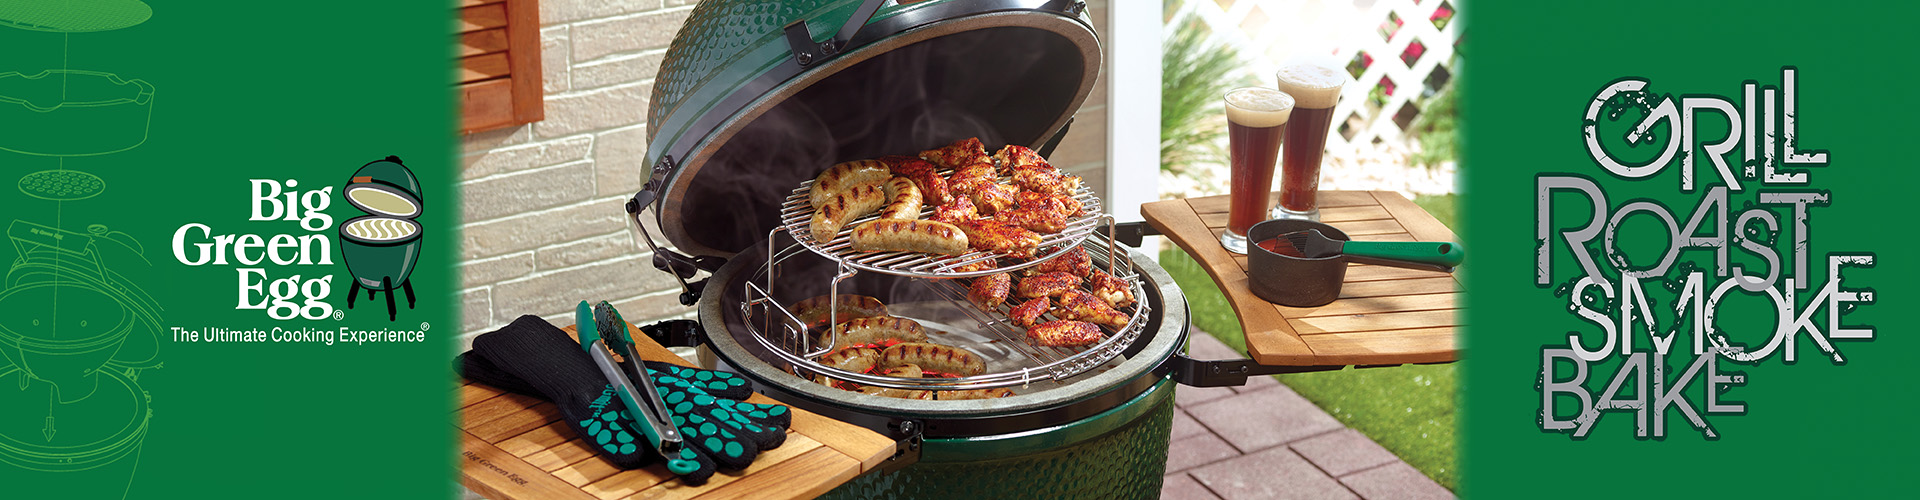 12 Gift Ideas for the Big Green Egg EGGhead in Your Family ... Amazing Kitchen Ideas Big Green Egg on big green egg design, green egg small kitchen ideas, big green egg recipes, big green egg dinner,